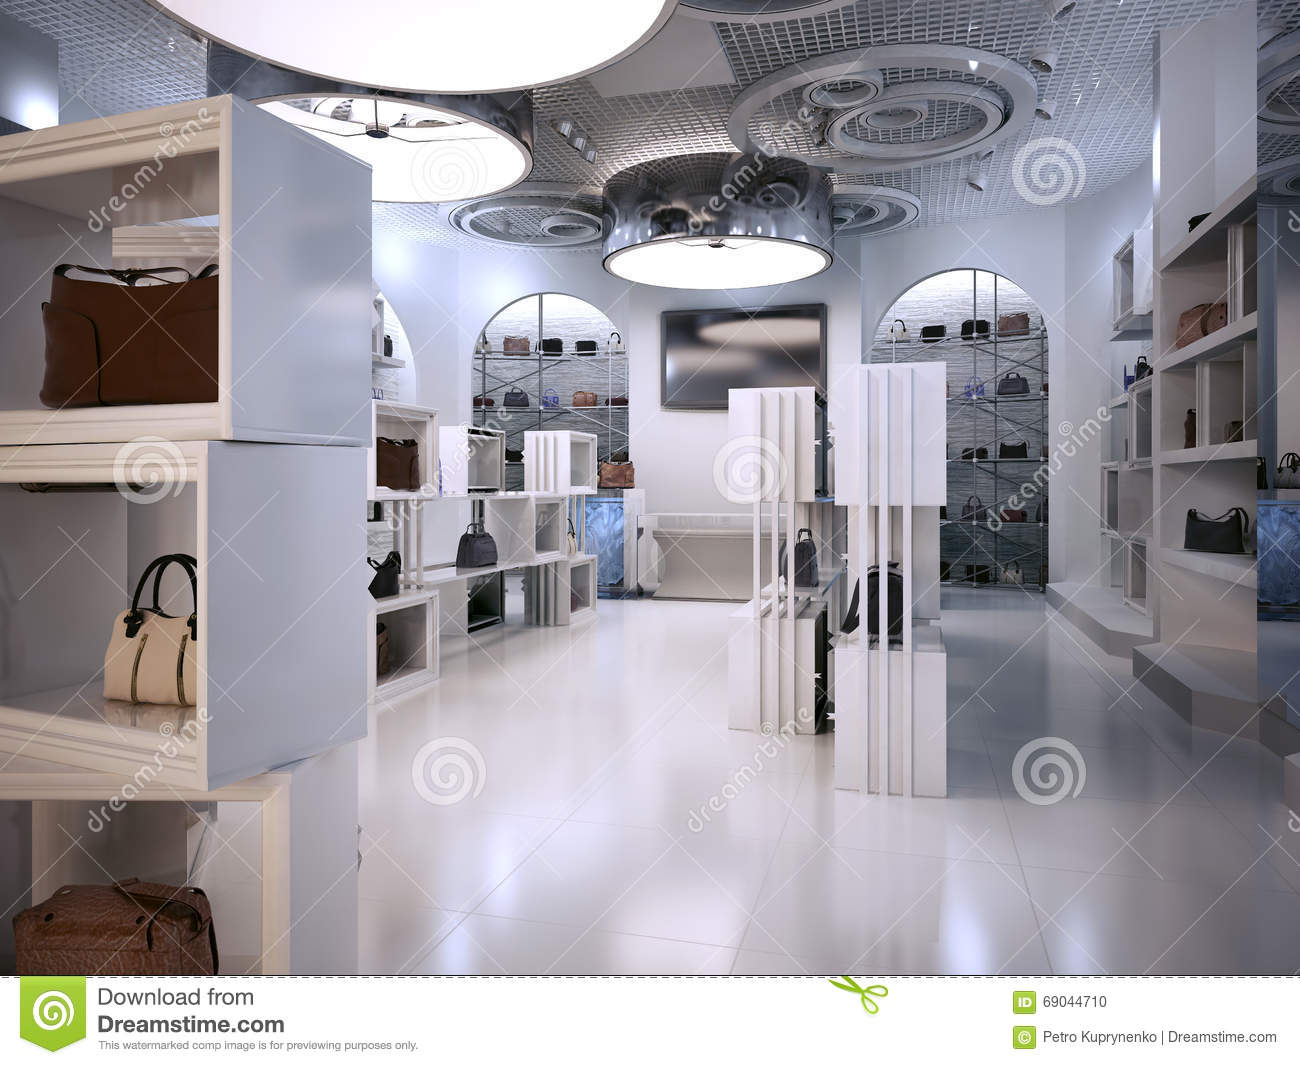 Deco Store Luxury Store Interior Design Art Deco Style With Hints Of